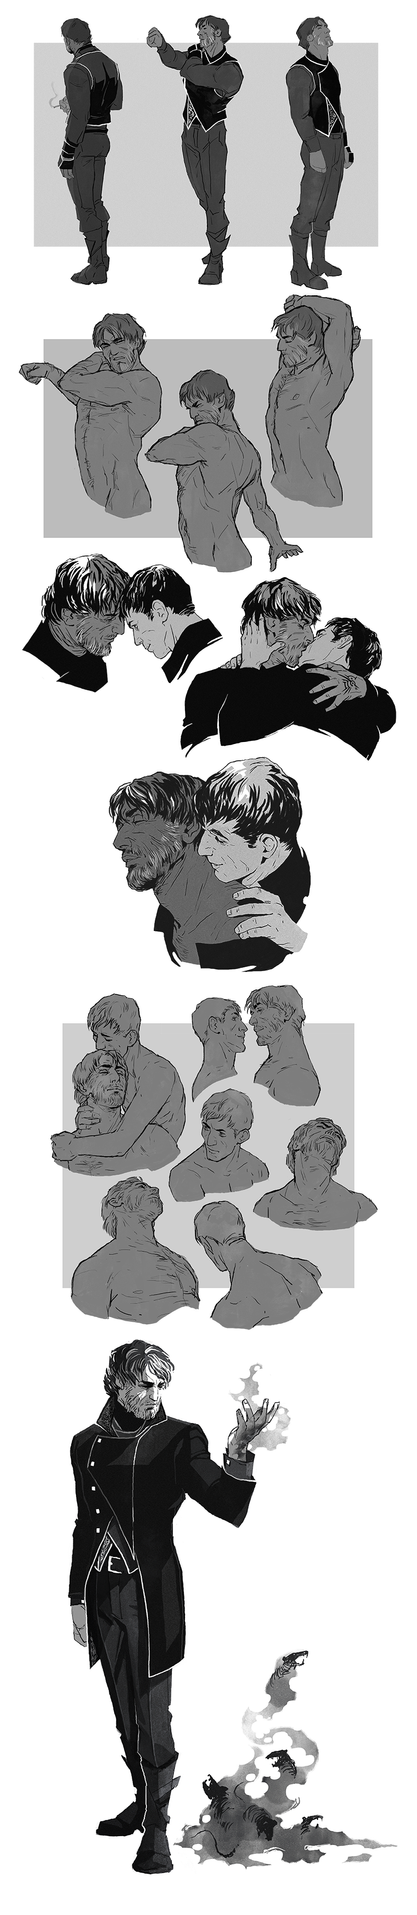 Sketchdump: Even More Corvs by coupleofkooks